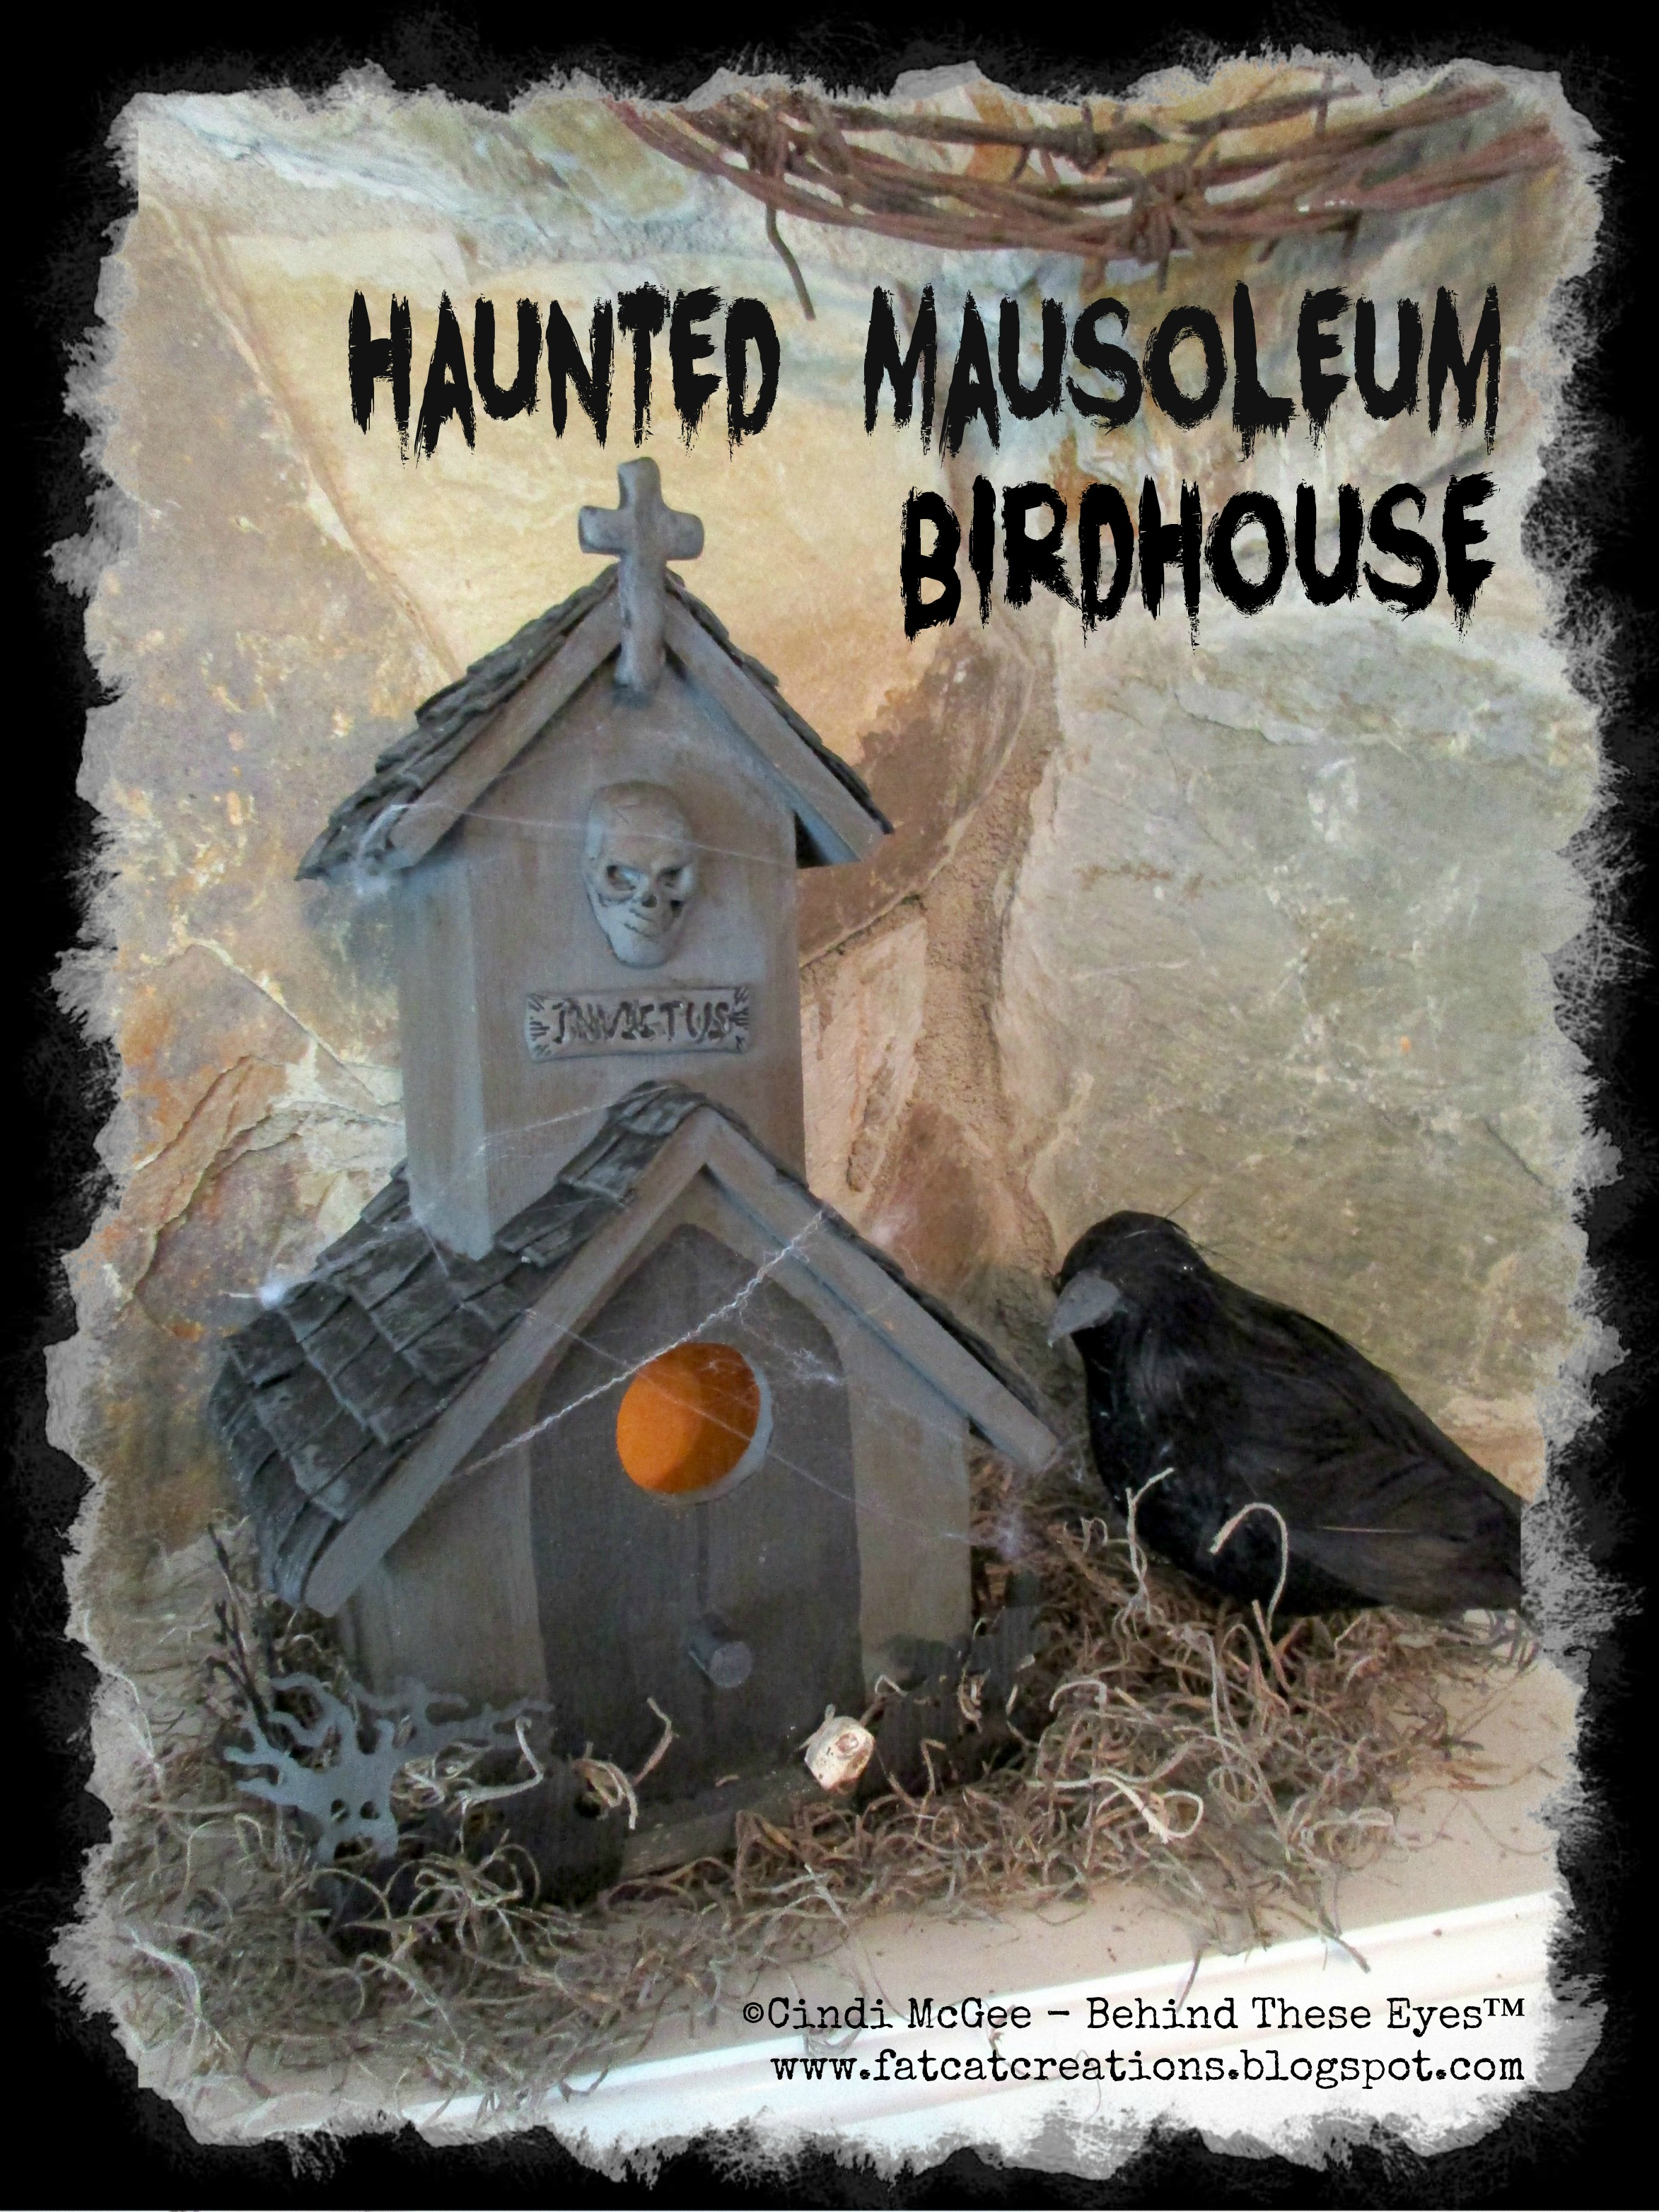 mausoleum birdhouse